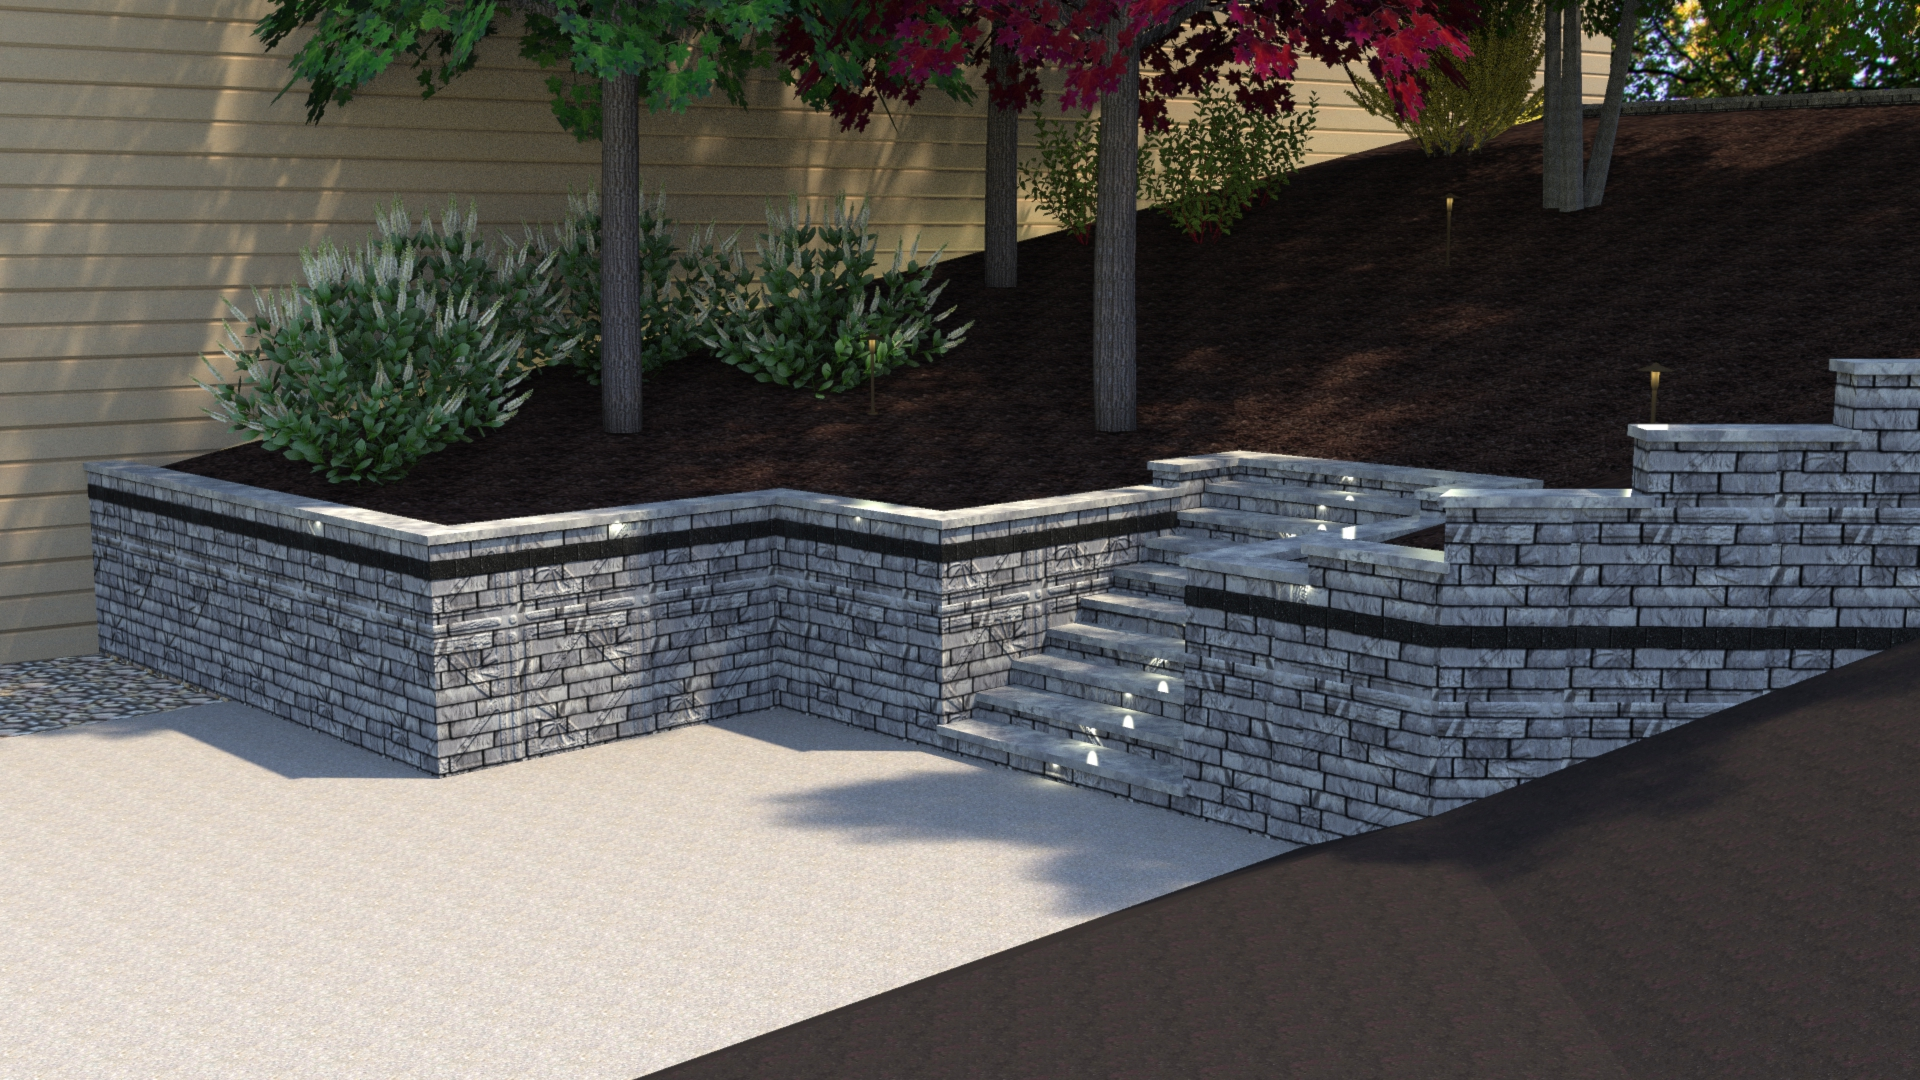 Gull Lake Retaining Wall Renovation